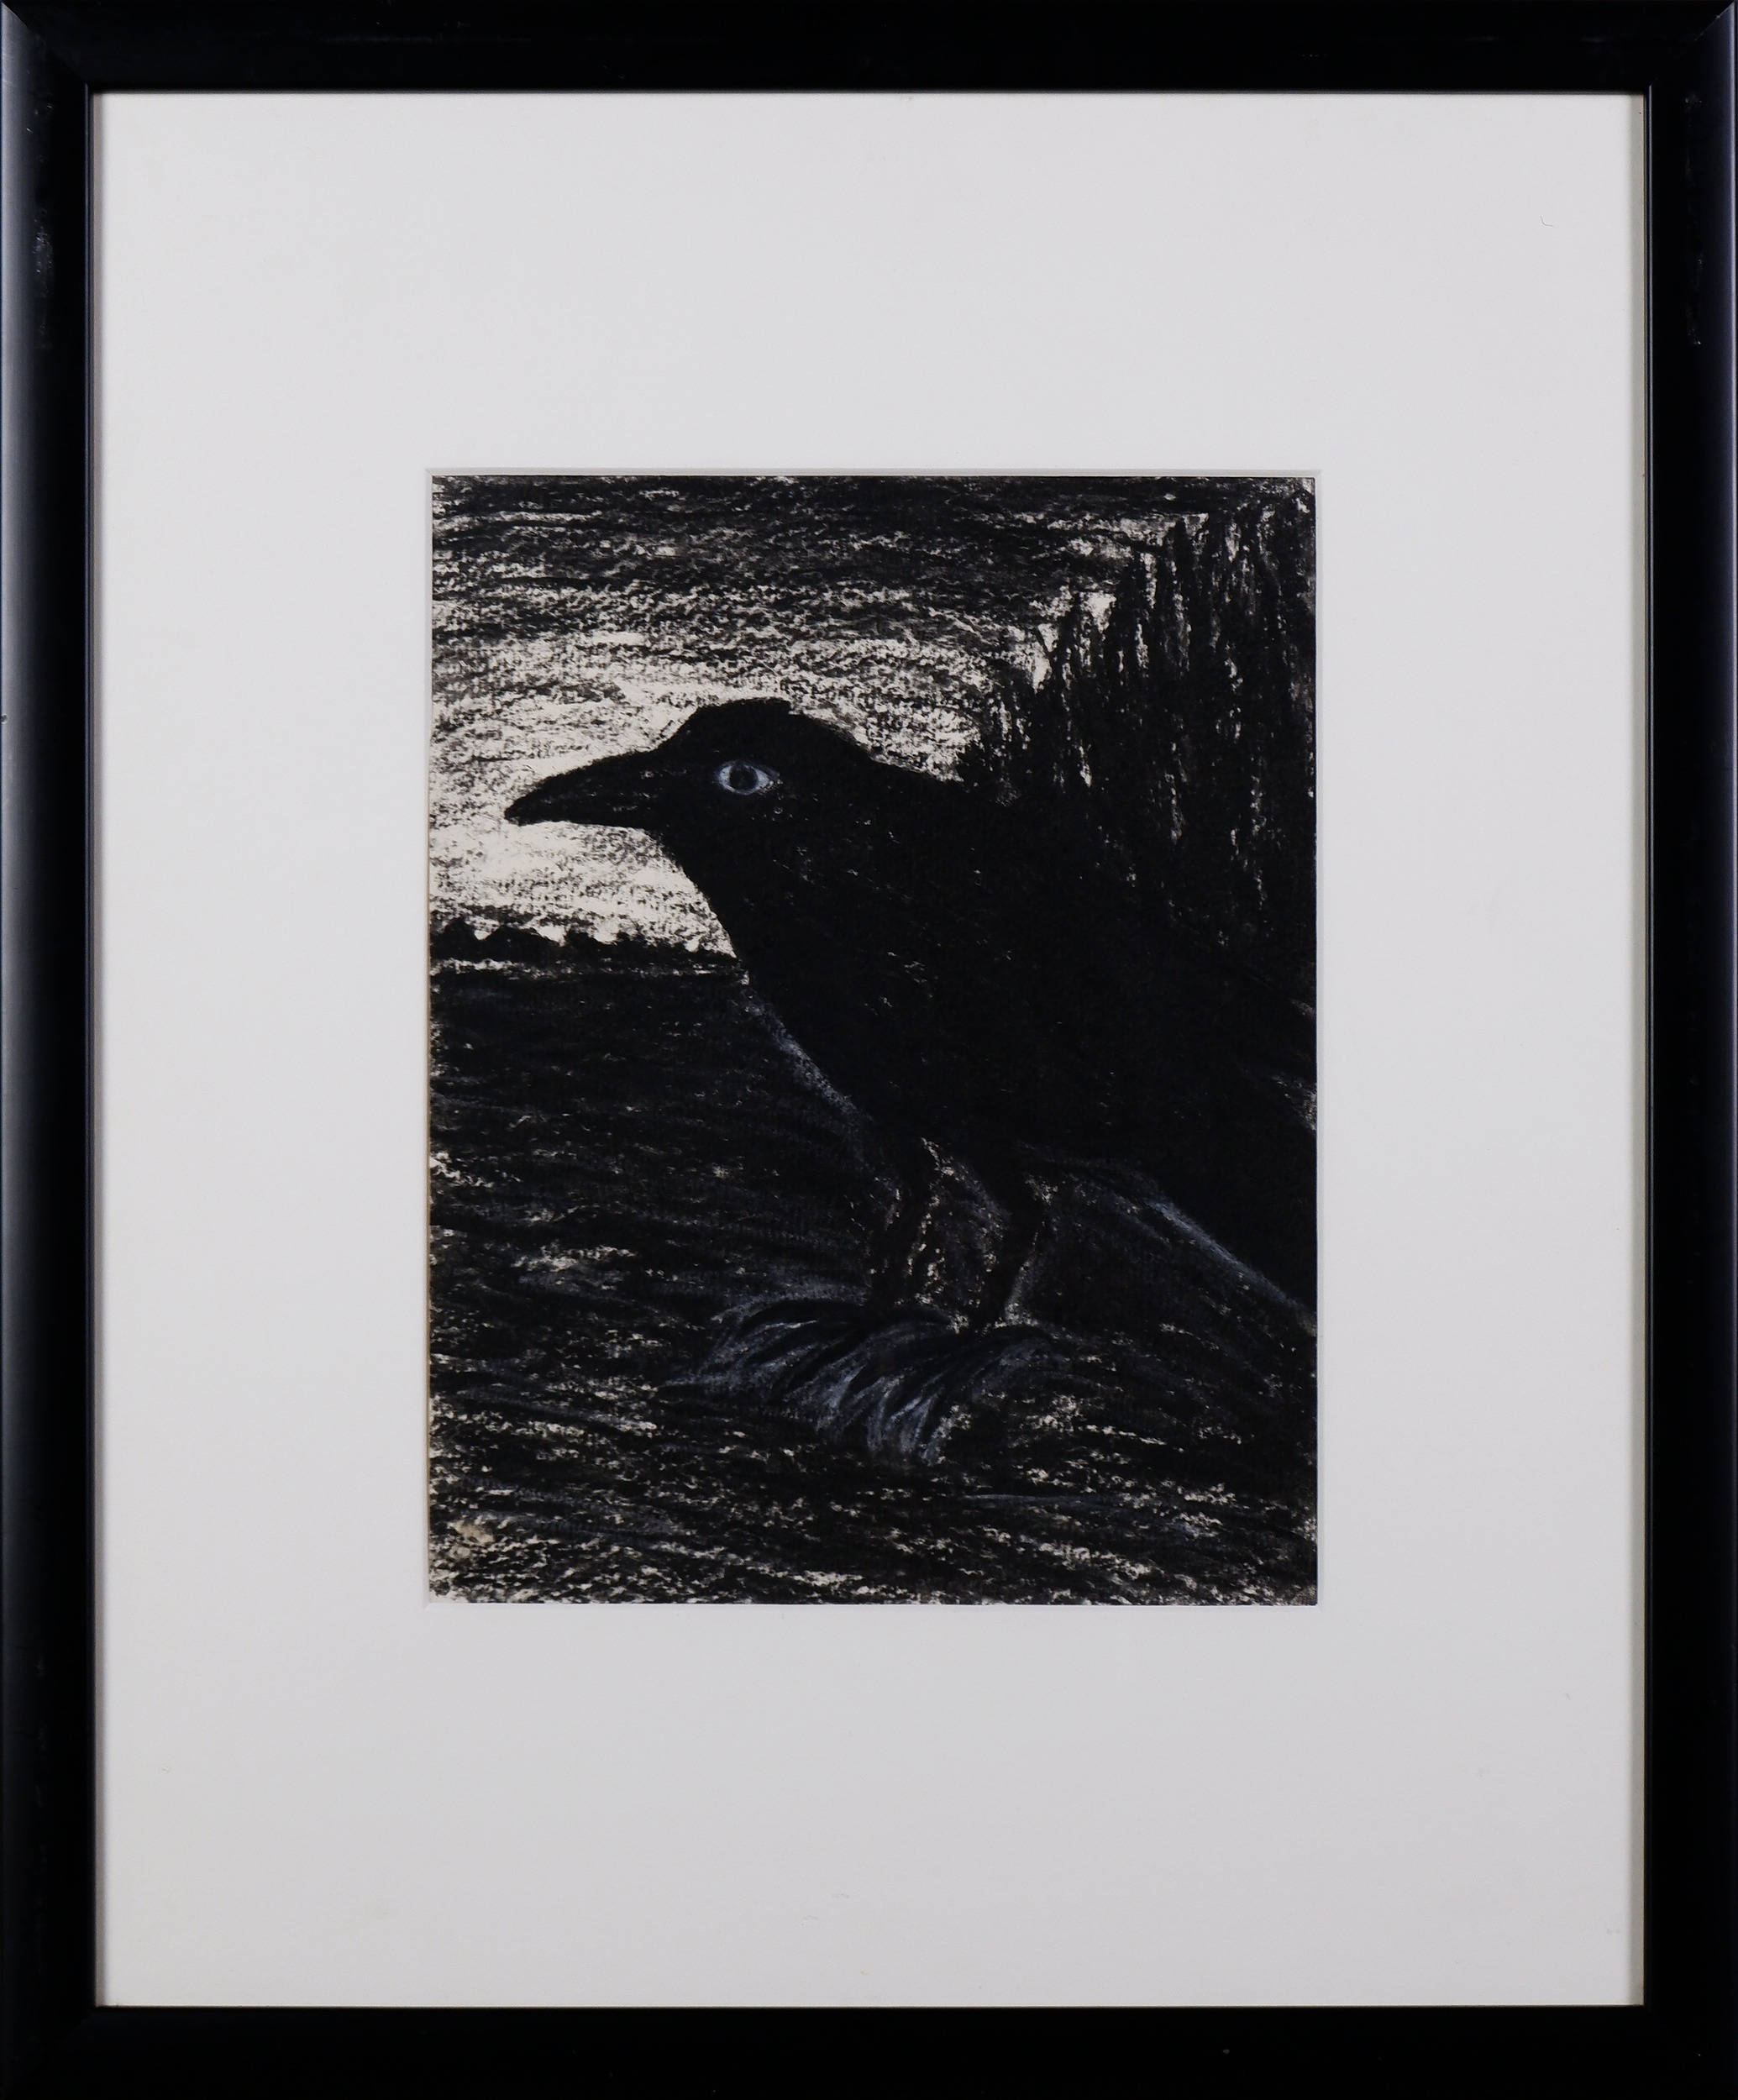 'Peter Booth (born 1940), Raven c1977, Charcoal and Pastel on Paper'